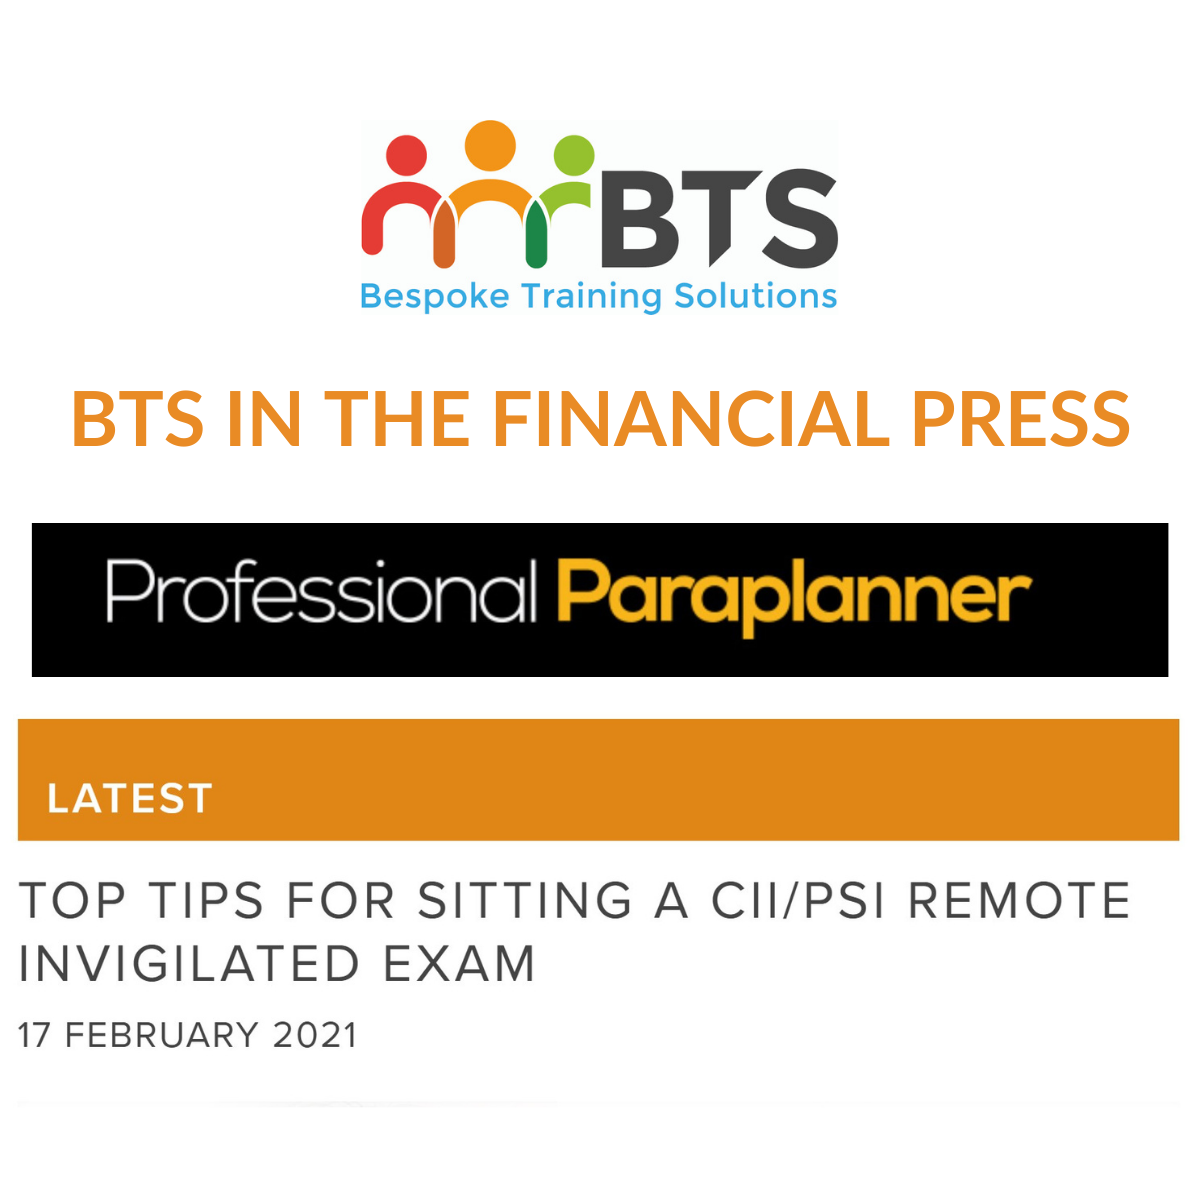 Professional Paraplanner Top Tips for Remote Exams